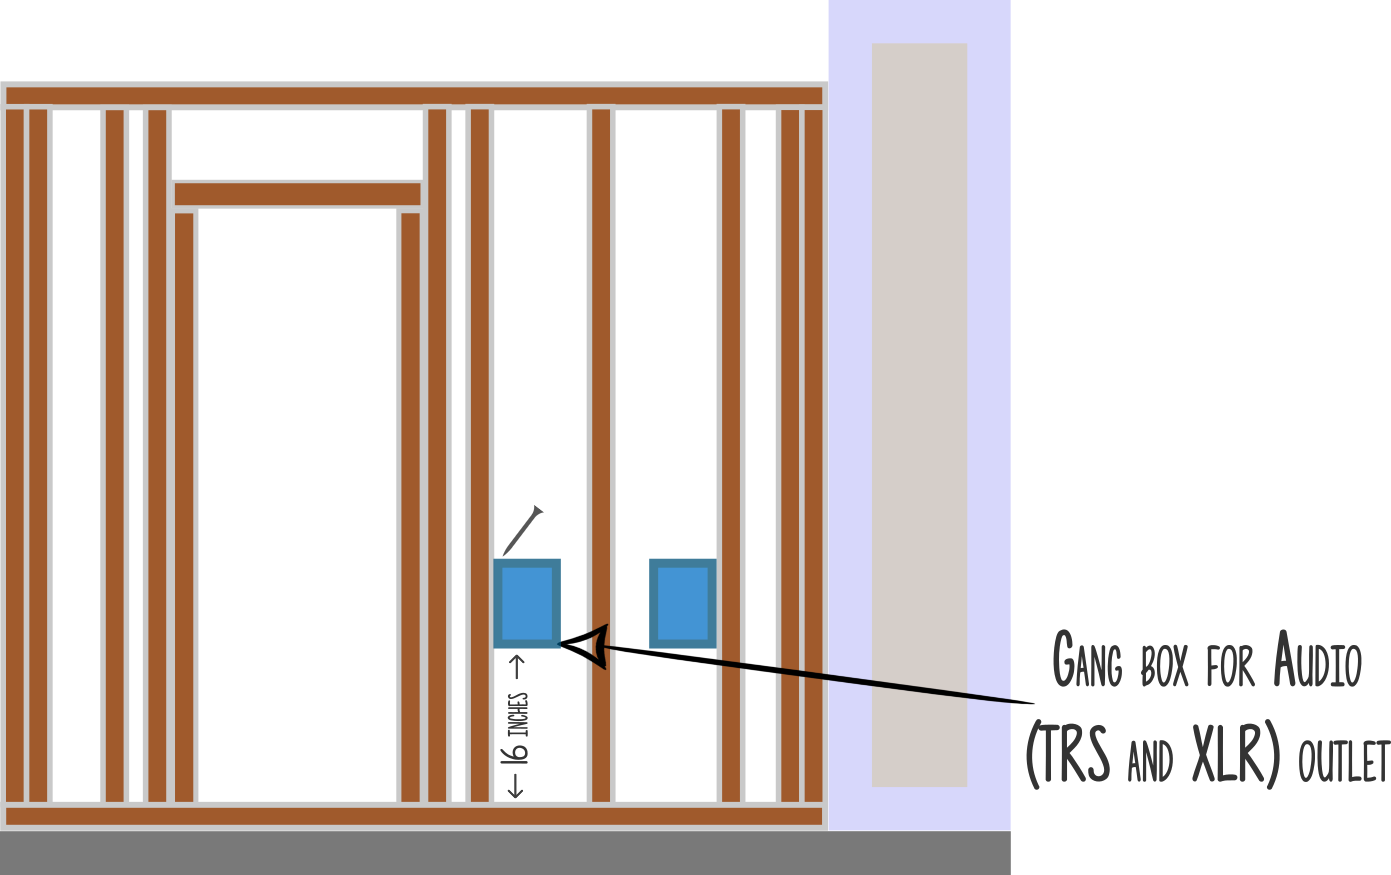 Gang Box for Audio Outlet Diagram